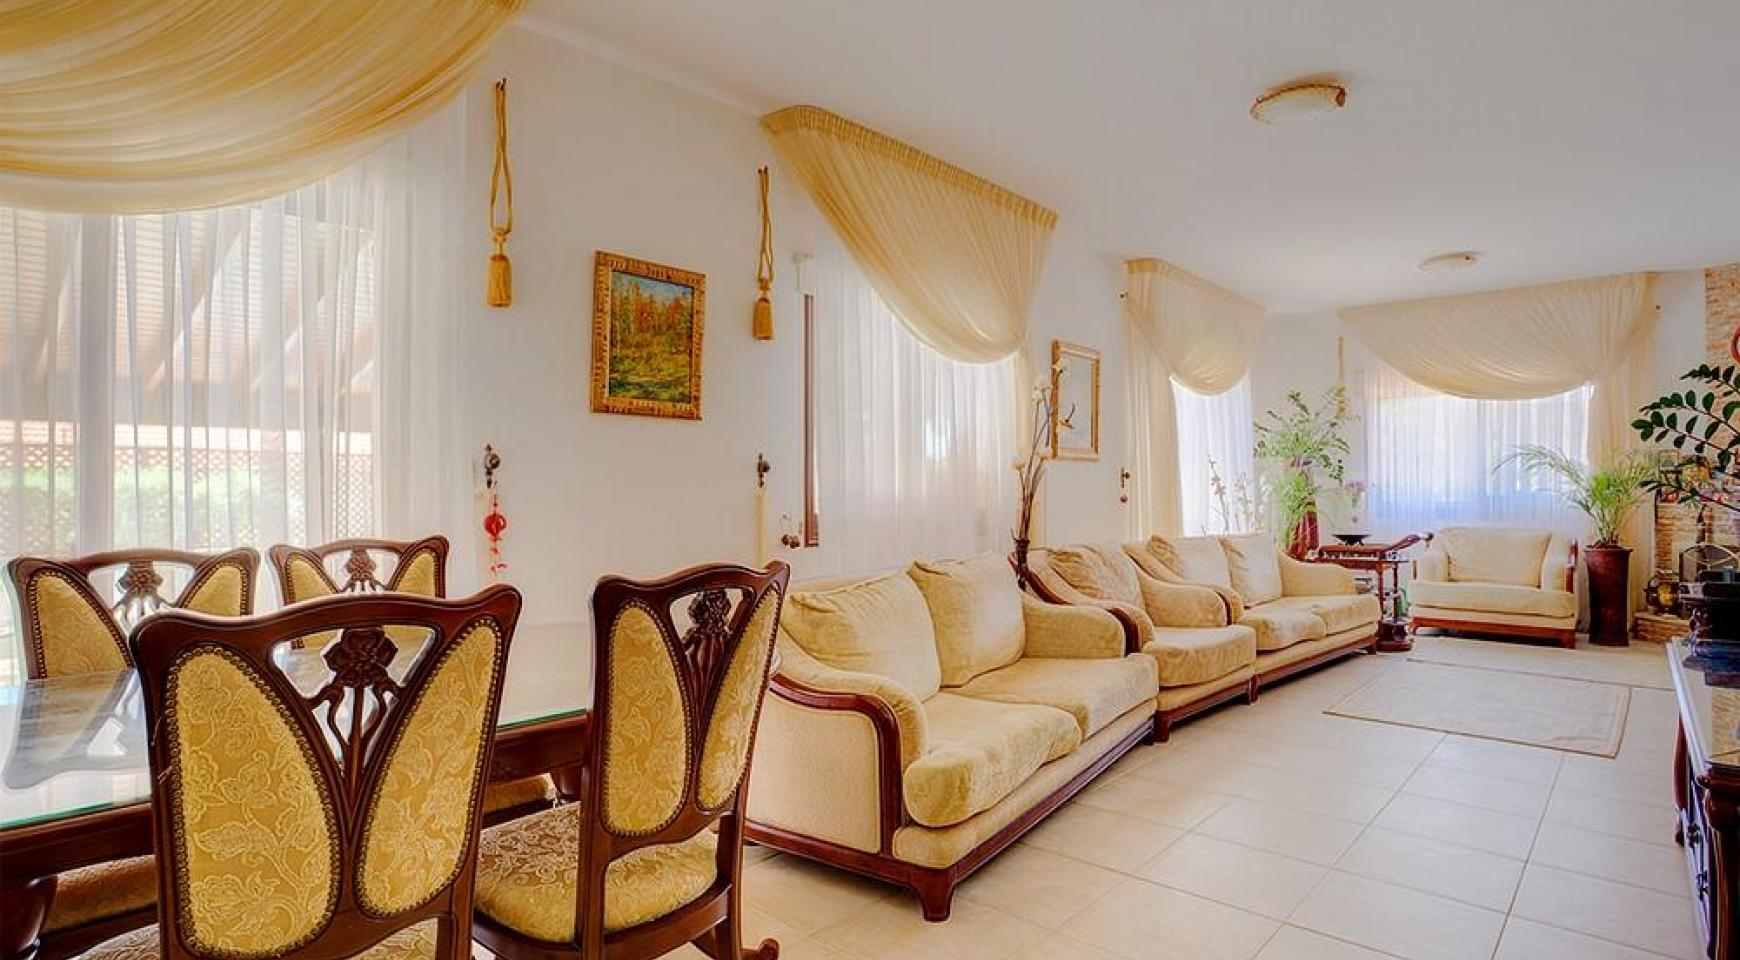 SPECIAL OFFER! Beautiful Spacious 3 Bedroom Villa in Souni  - 9